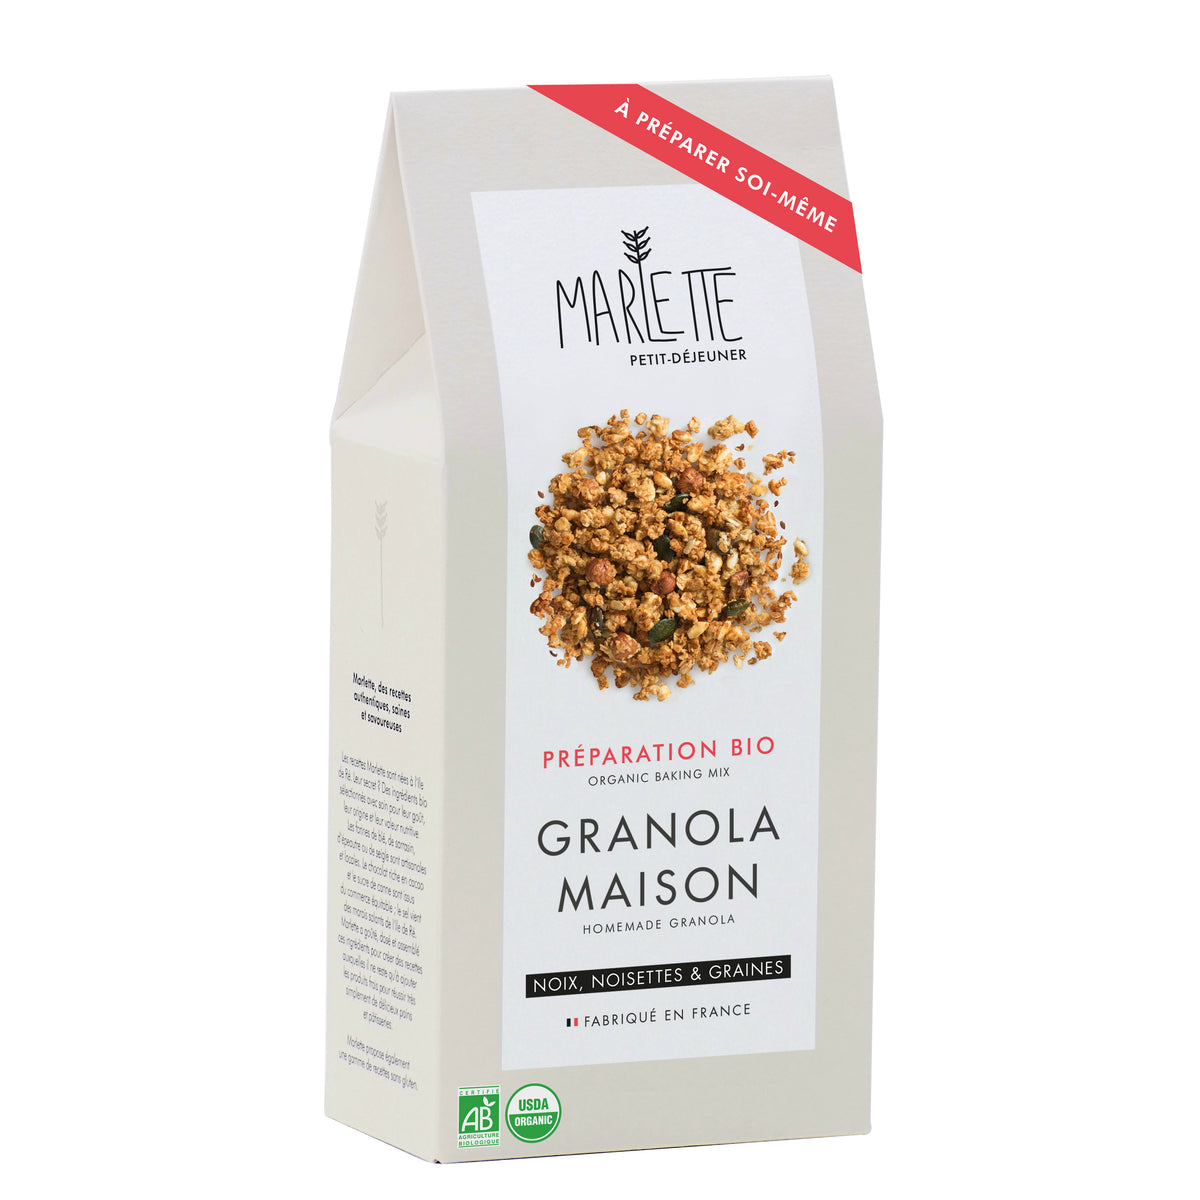 Homemade granola - organic baking mix